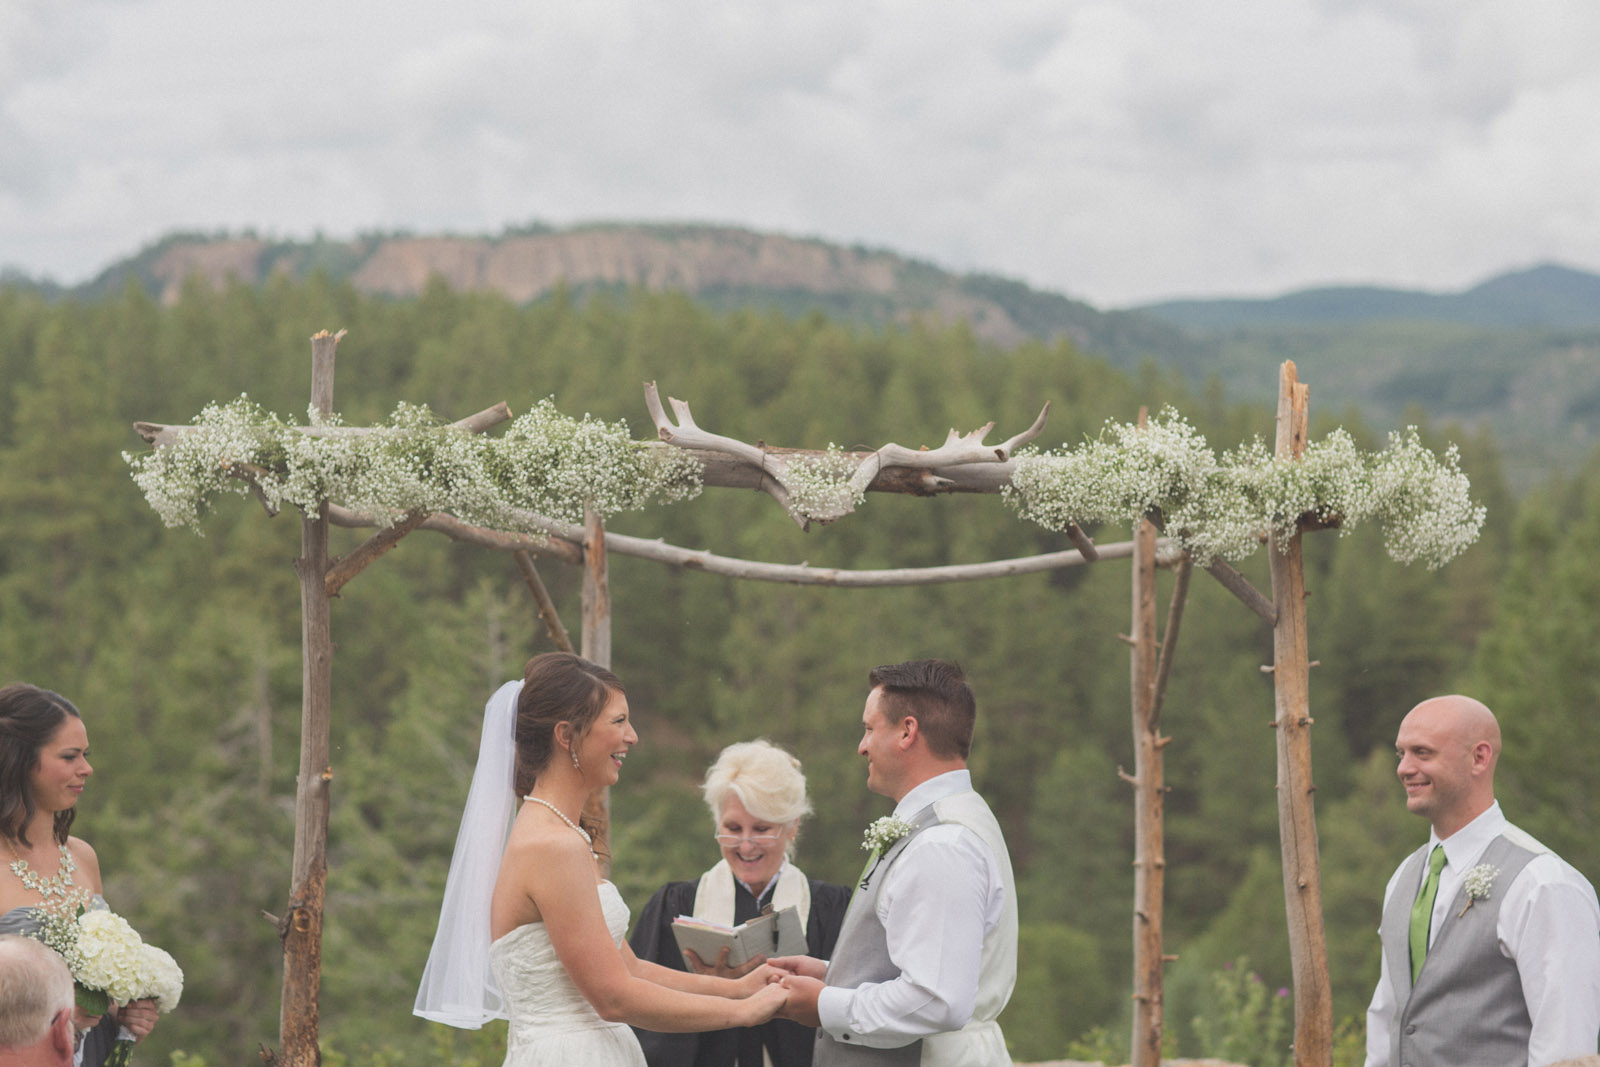 132-wedding-ideas-ideas-wedding-forest-mason-jars-backdrop-colorado-mancos-ceremony